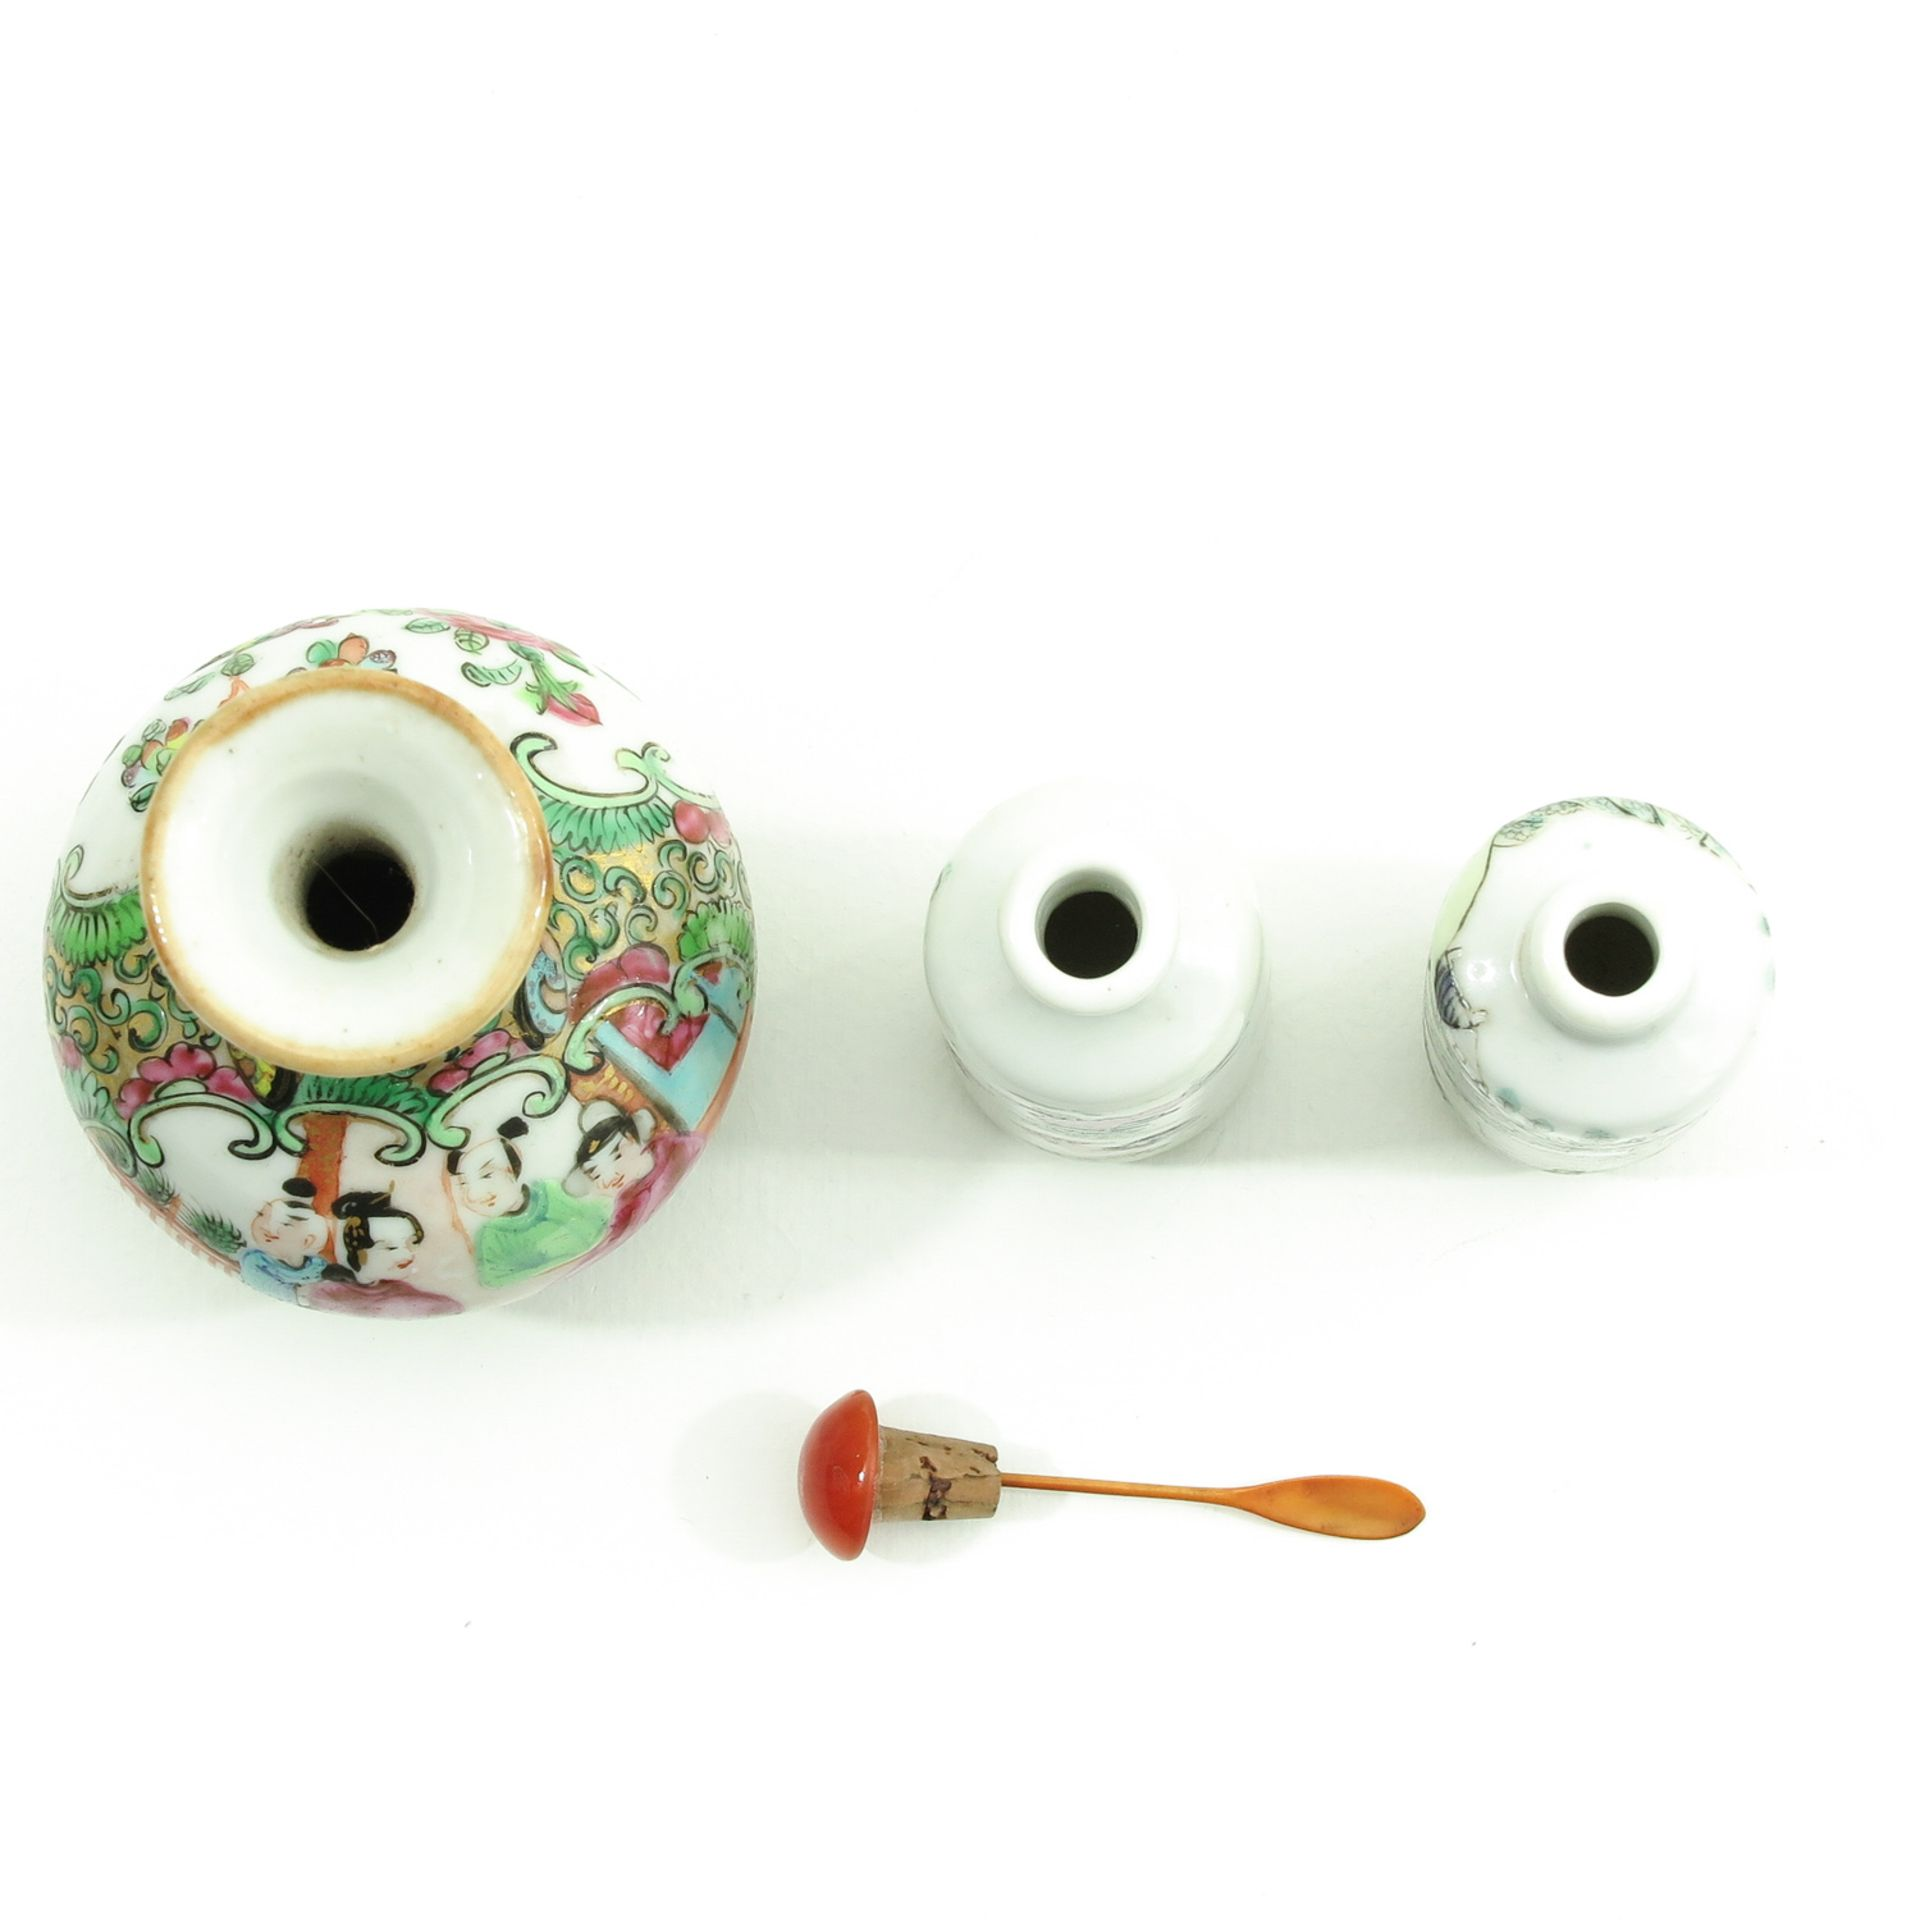 Los 7027 - A Colleciton of Chinese Porcelain